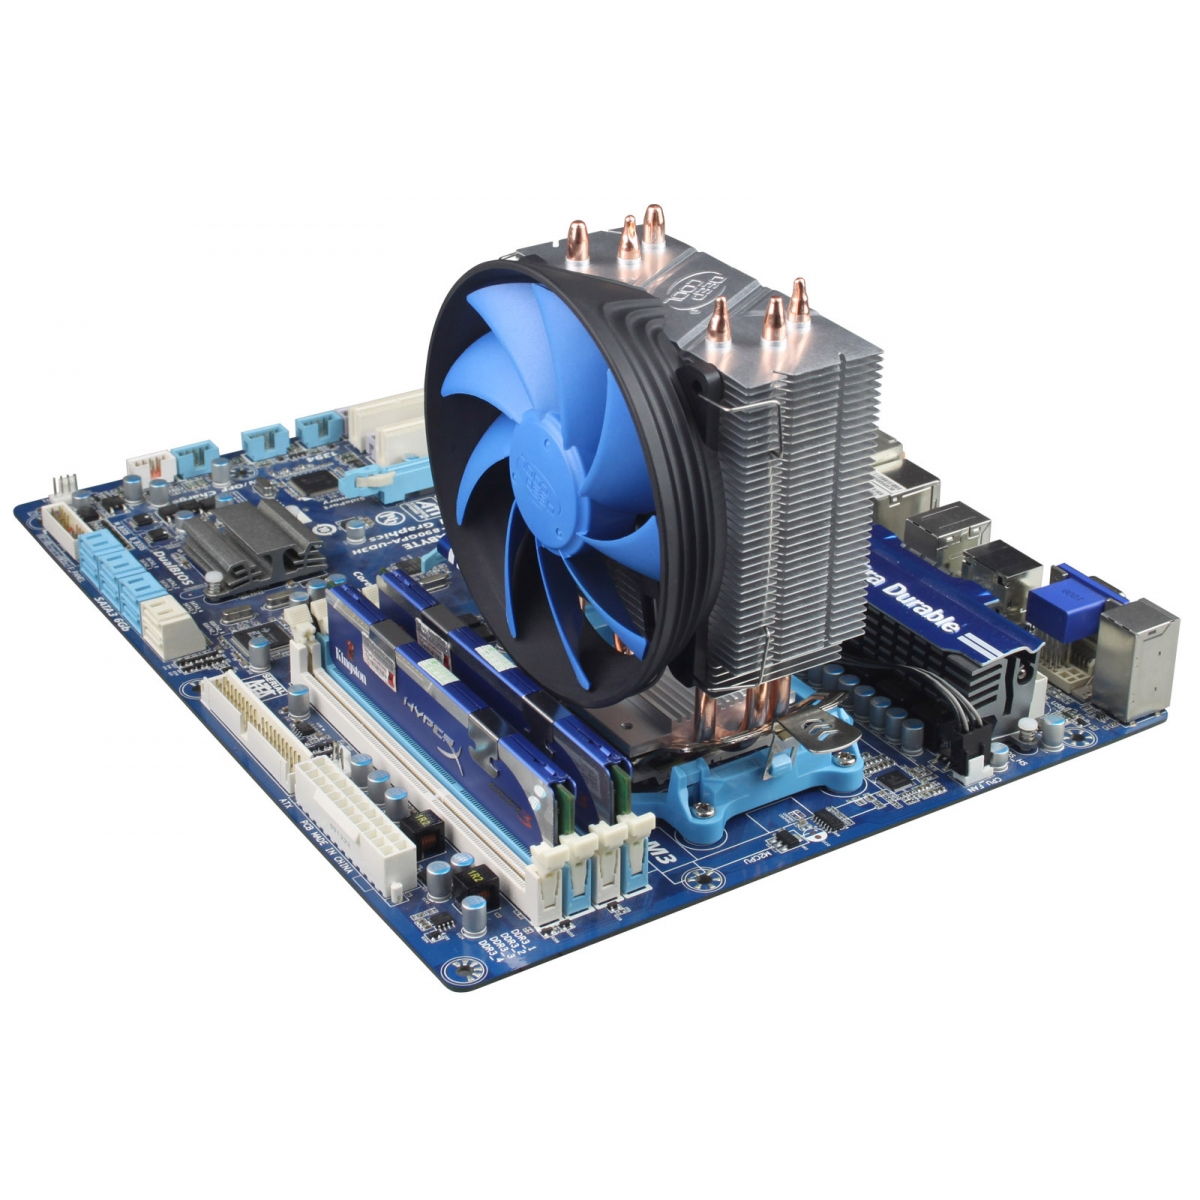 Cooler para processador DeepCool Gammaxx 300, Blue 120mm, Intel-AMD, DP-MCH3-GMX300